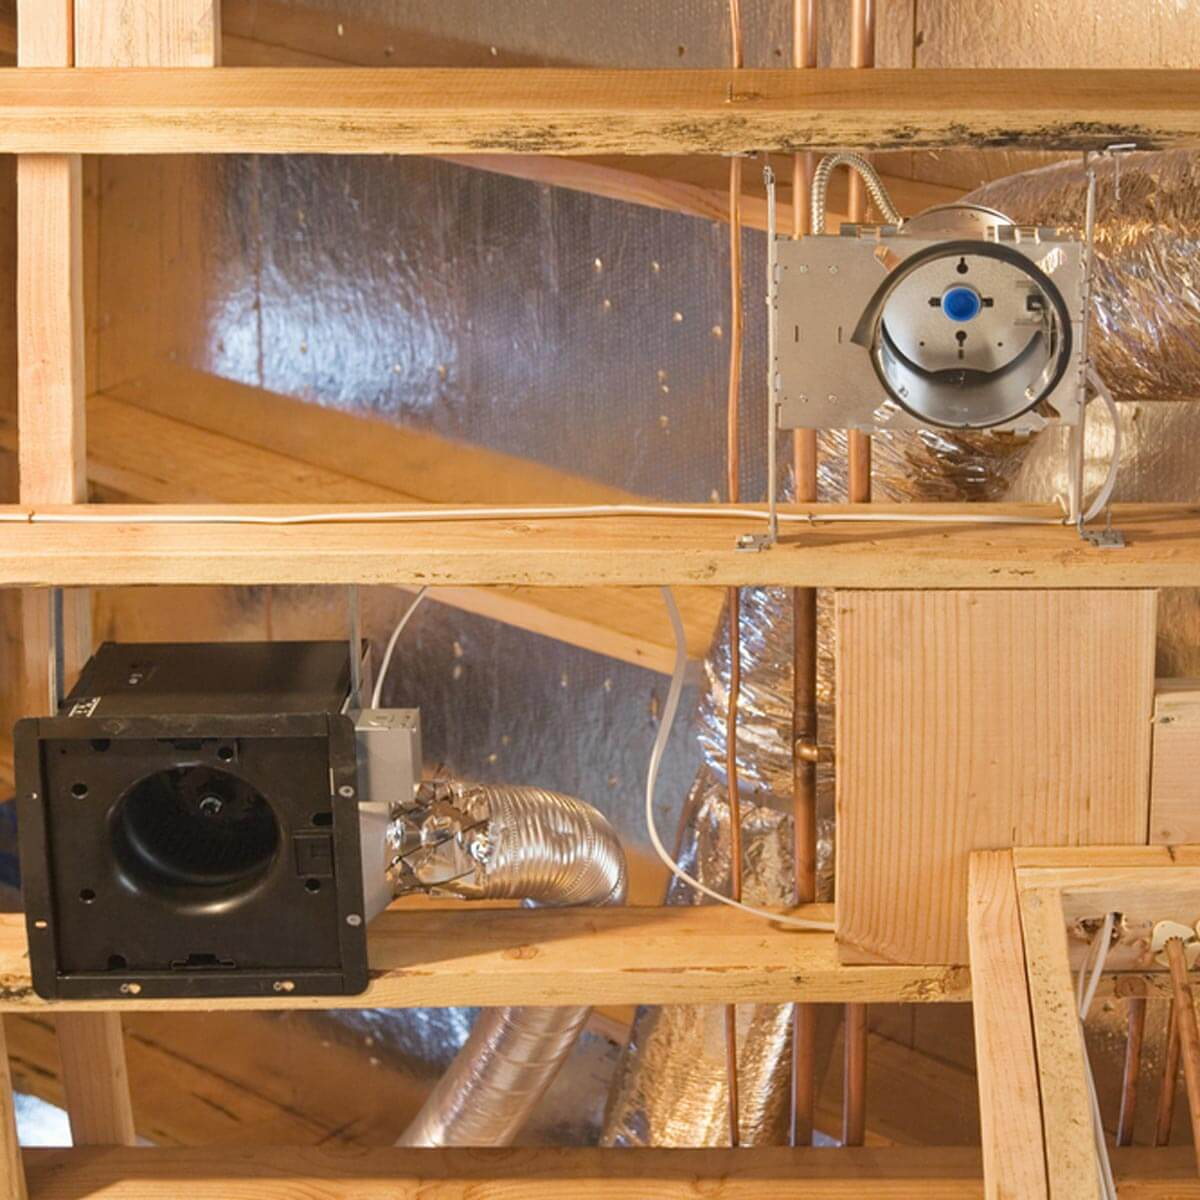 Proper ventilation can go a long way in preventing a termite infestation. #homehacks #DIY  http://cpix.me/a/72368409